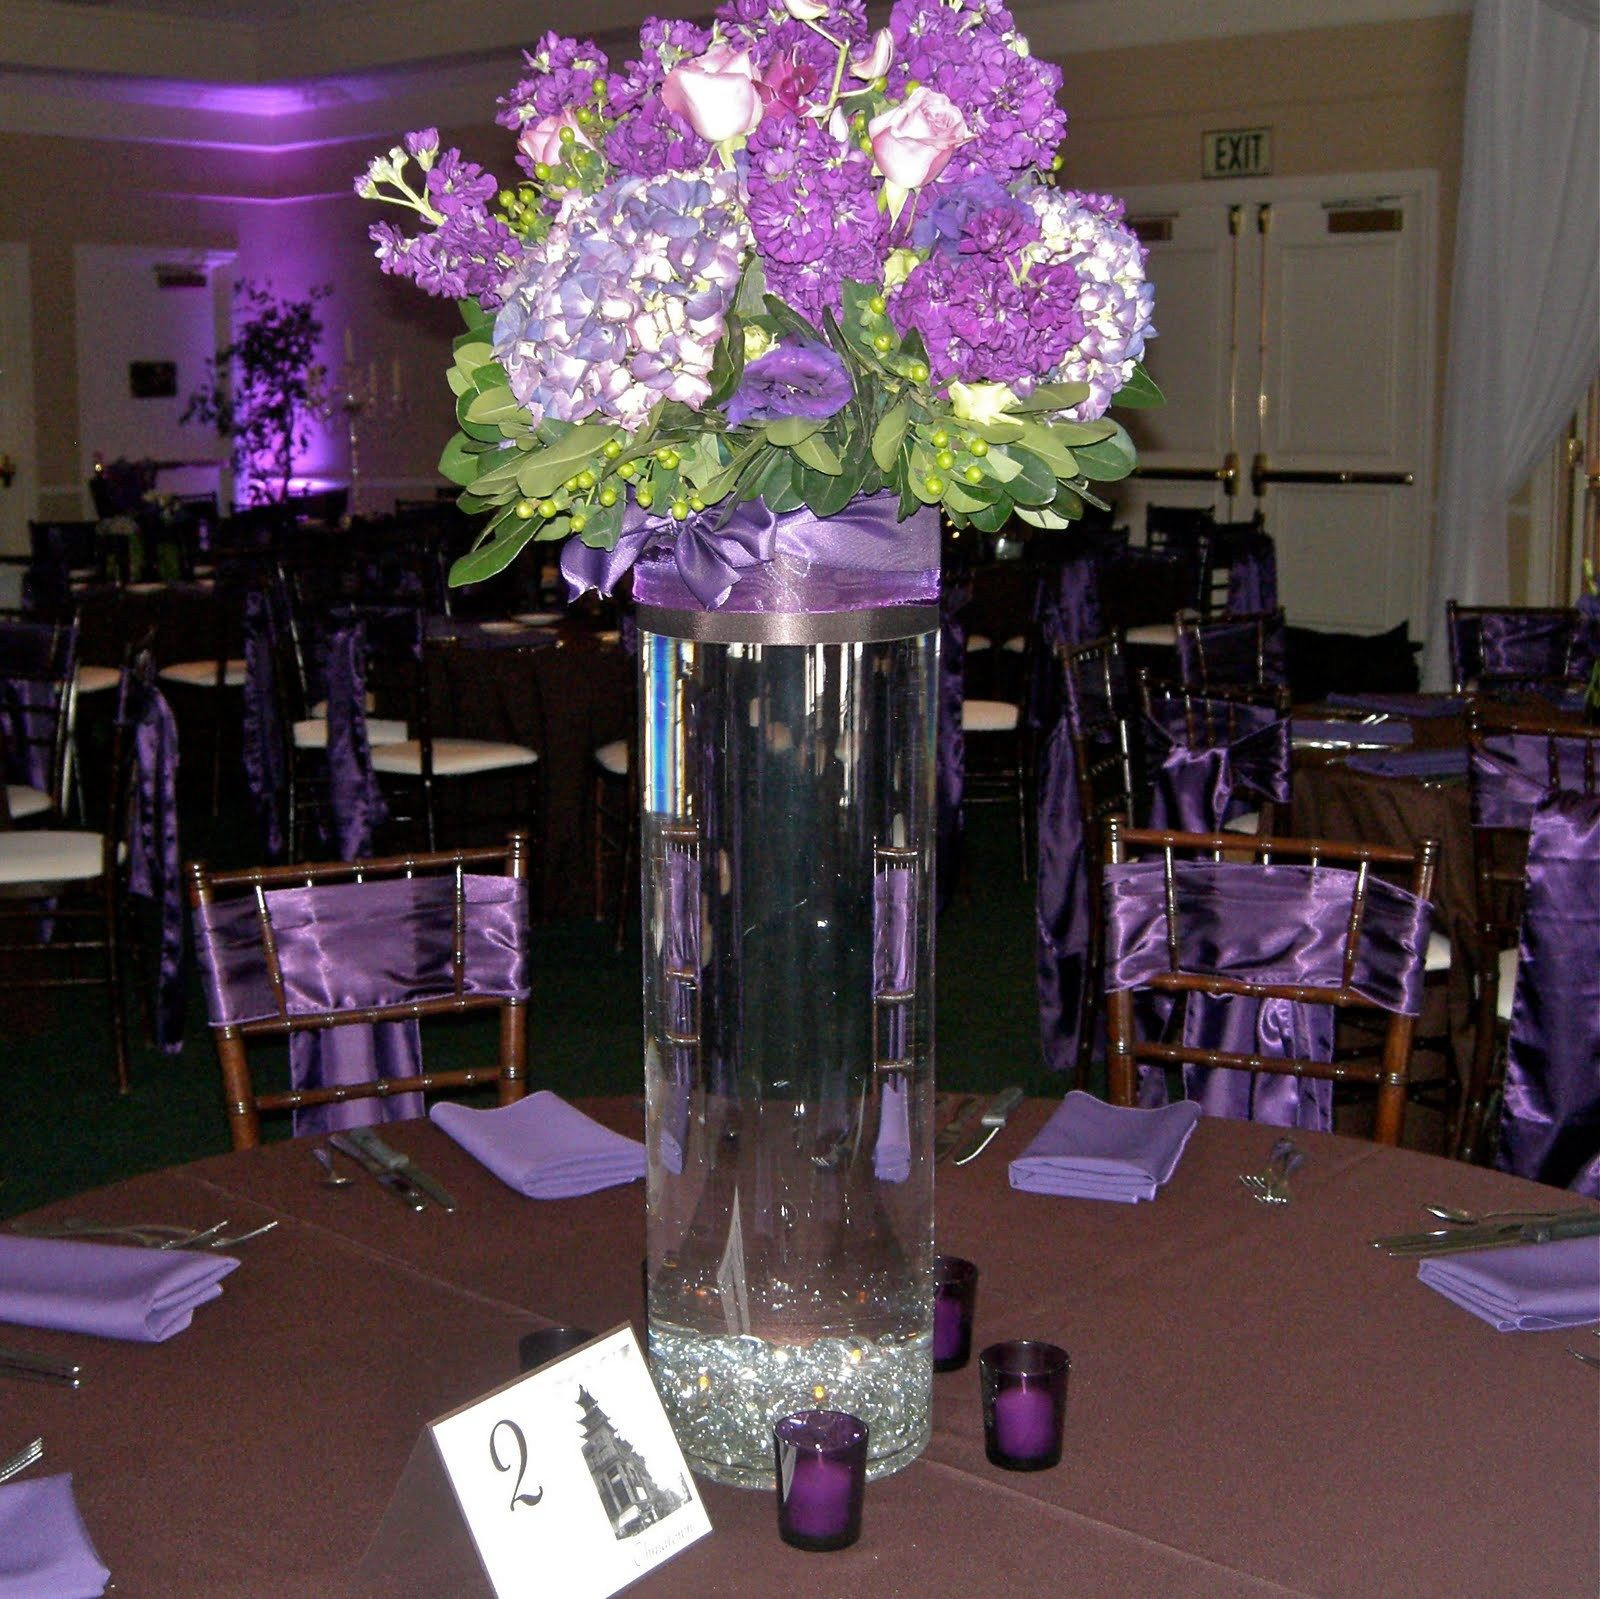 crystal vase florist austintown ohio of 23 tall cylinder vases the weekly world regarding bulk glass vases for centerpieces vase and cellar image avorcor